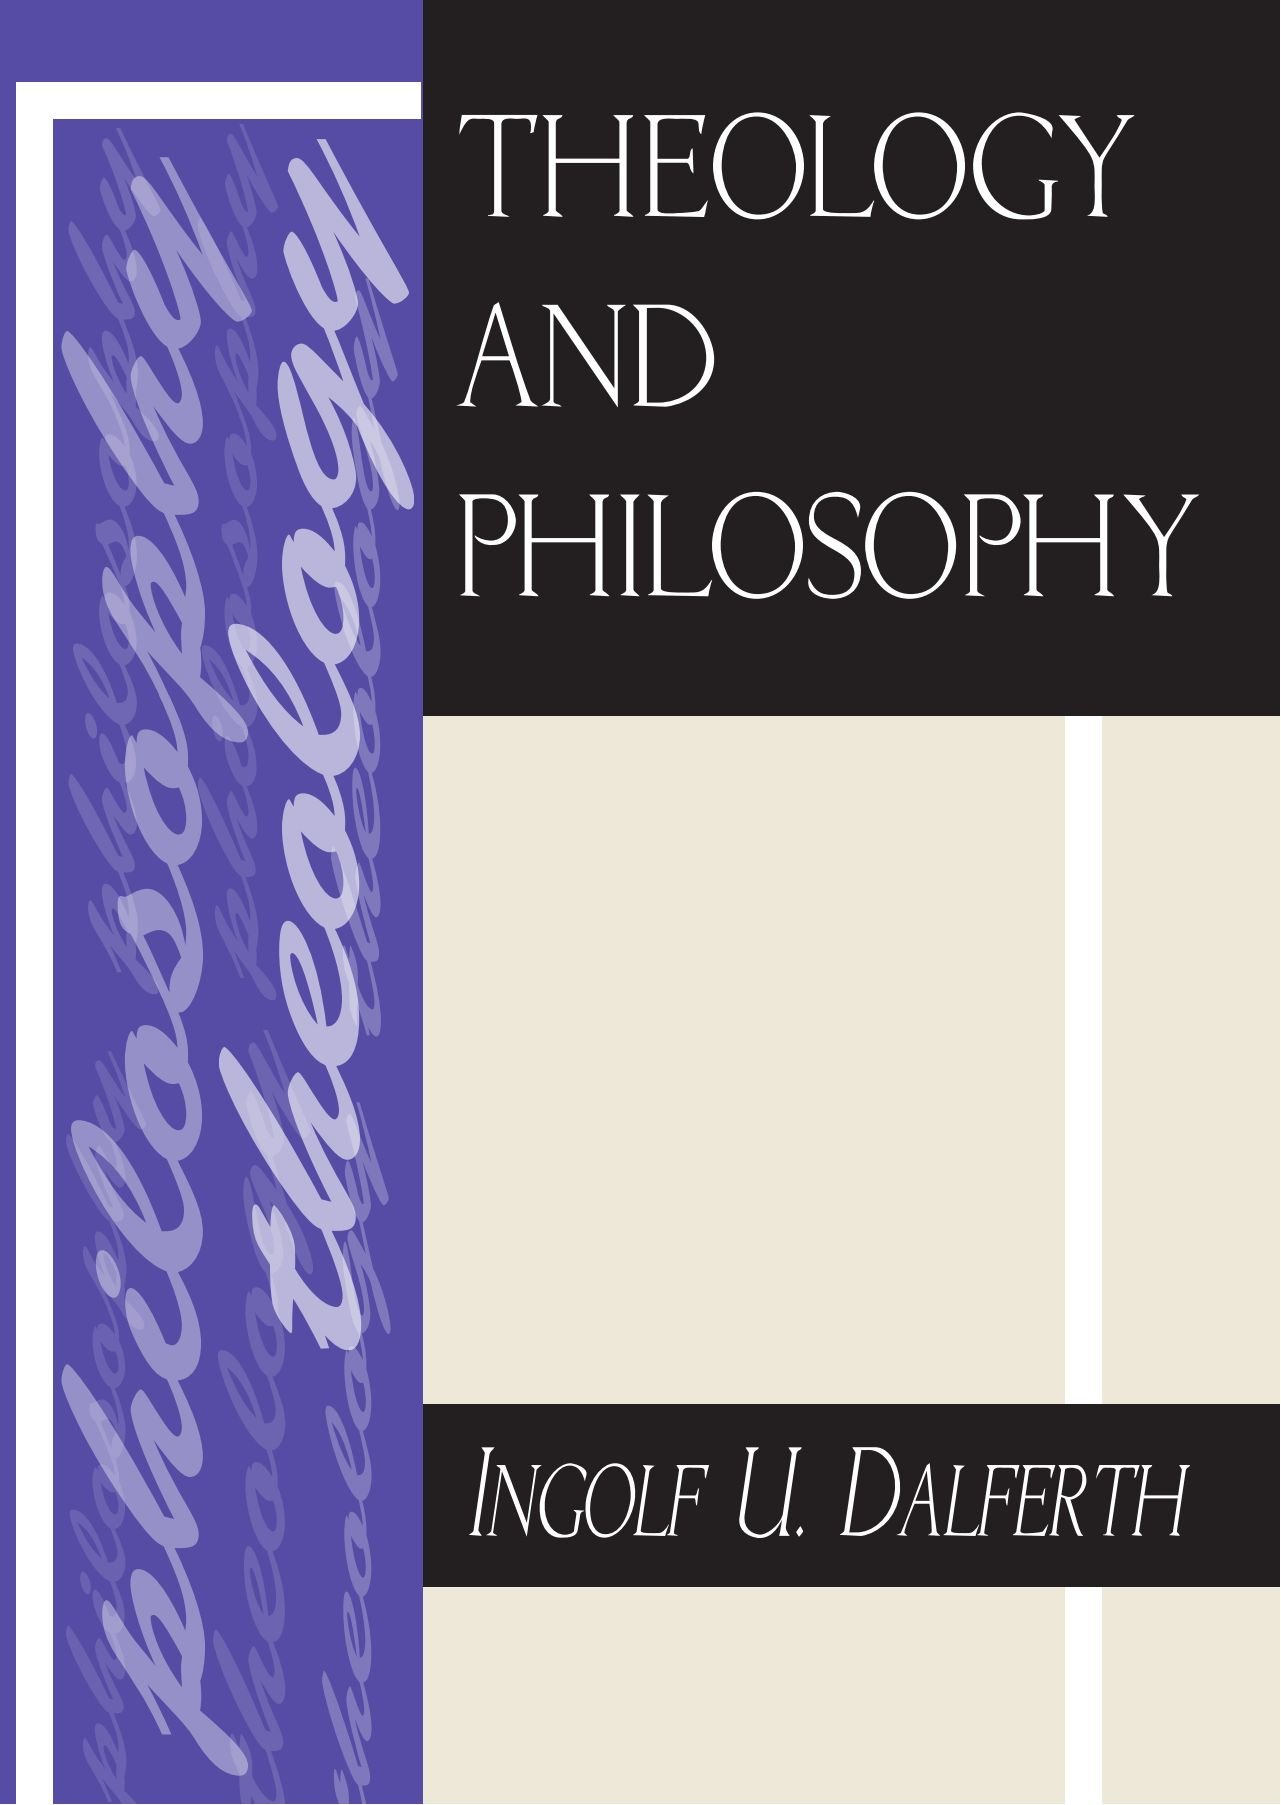 Theology and Philosophy: pdf epub